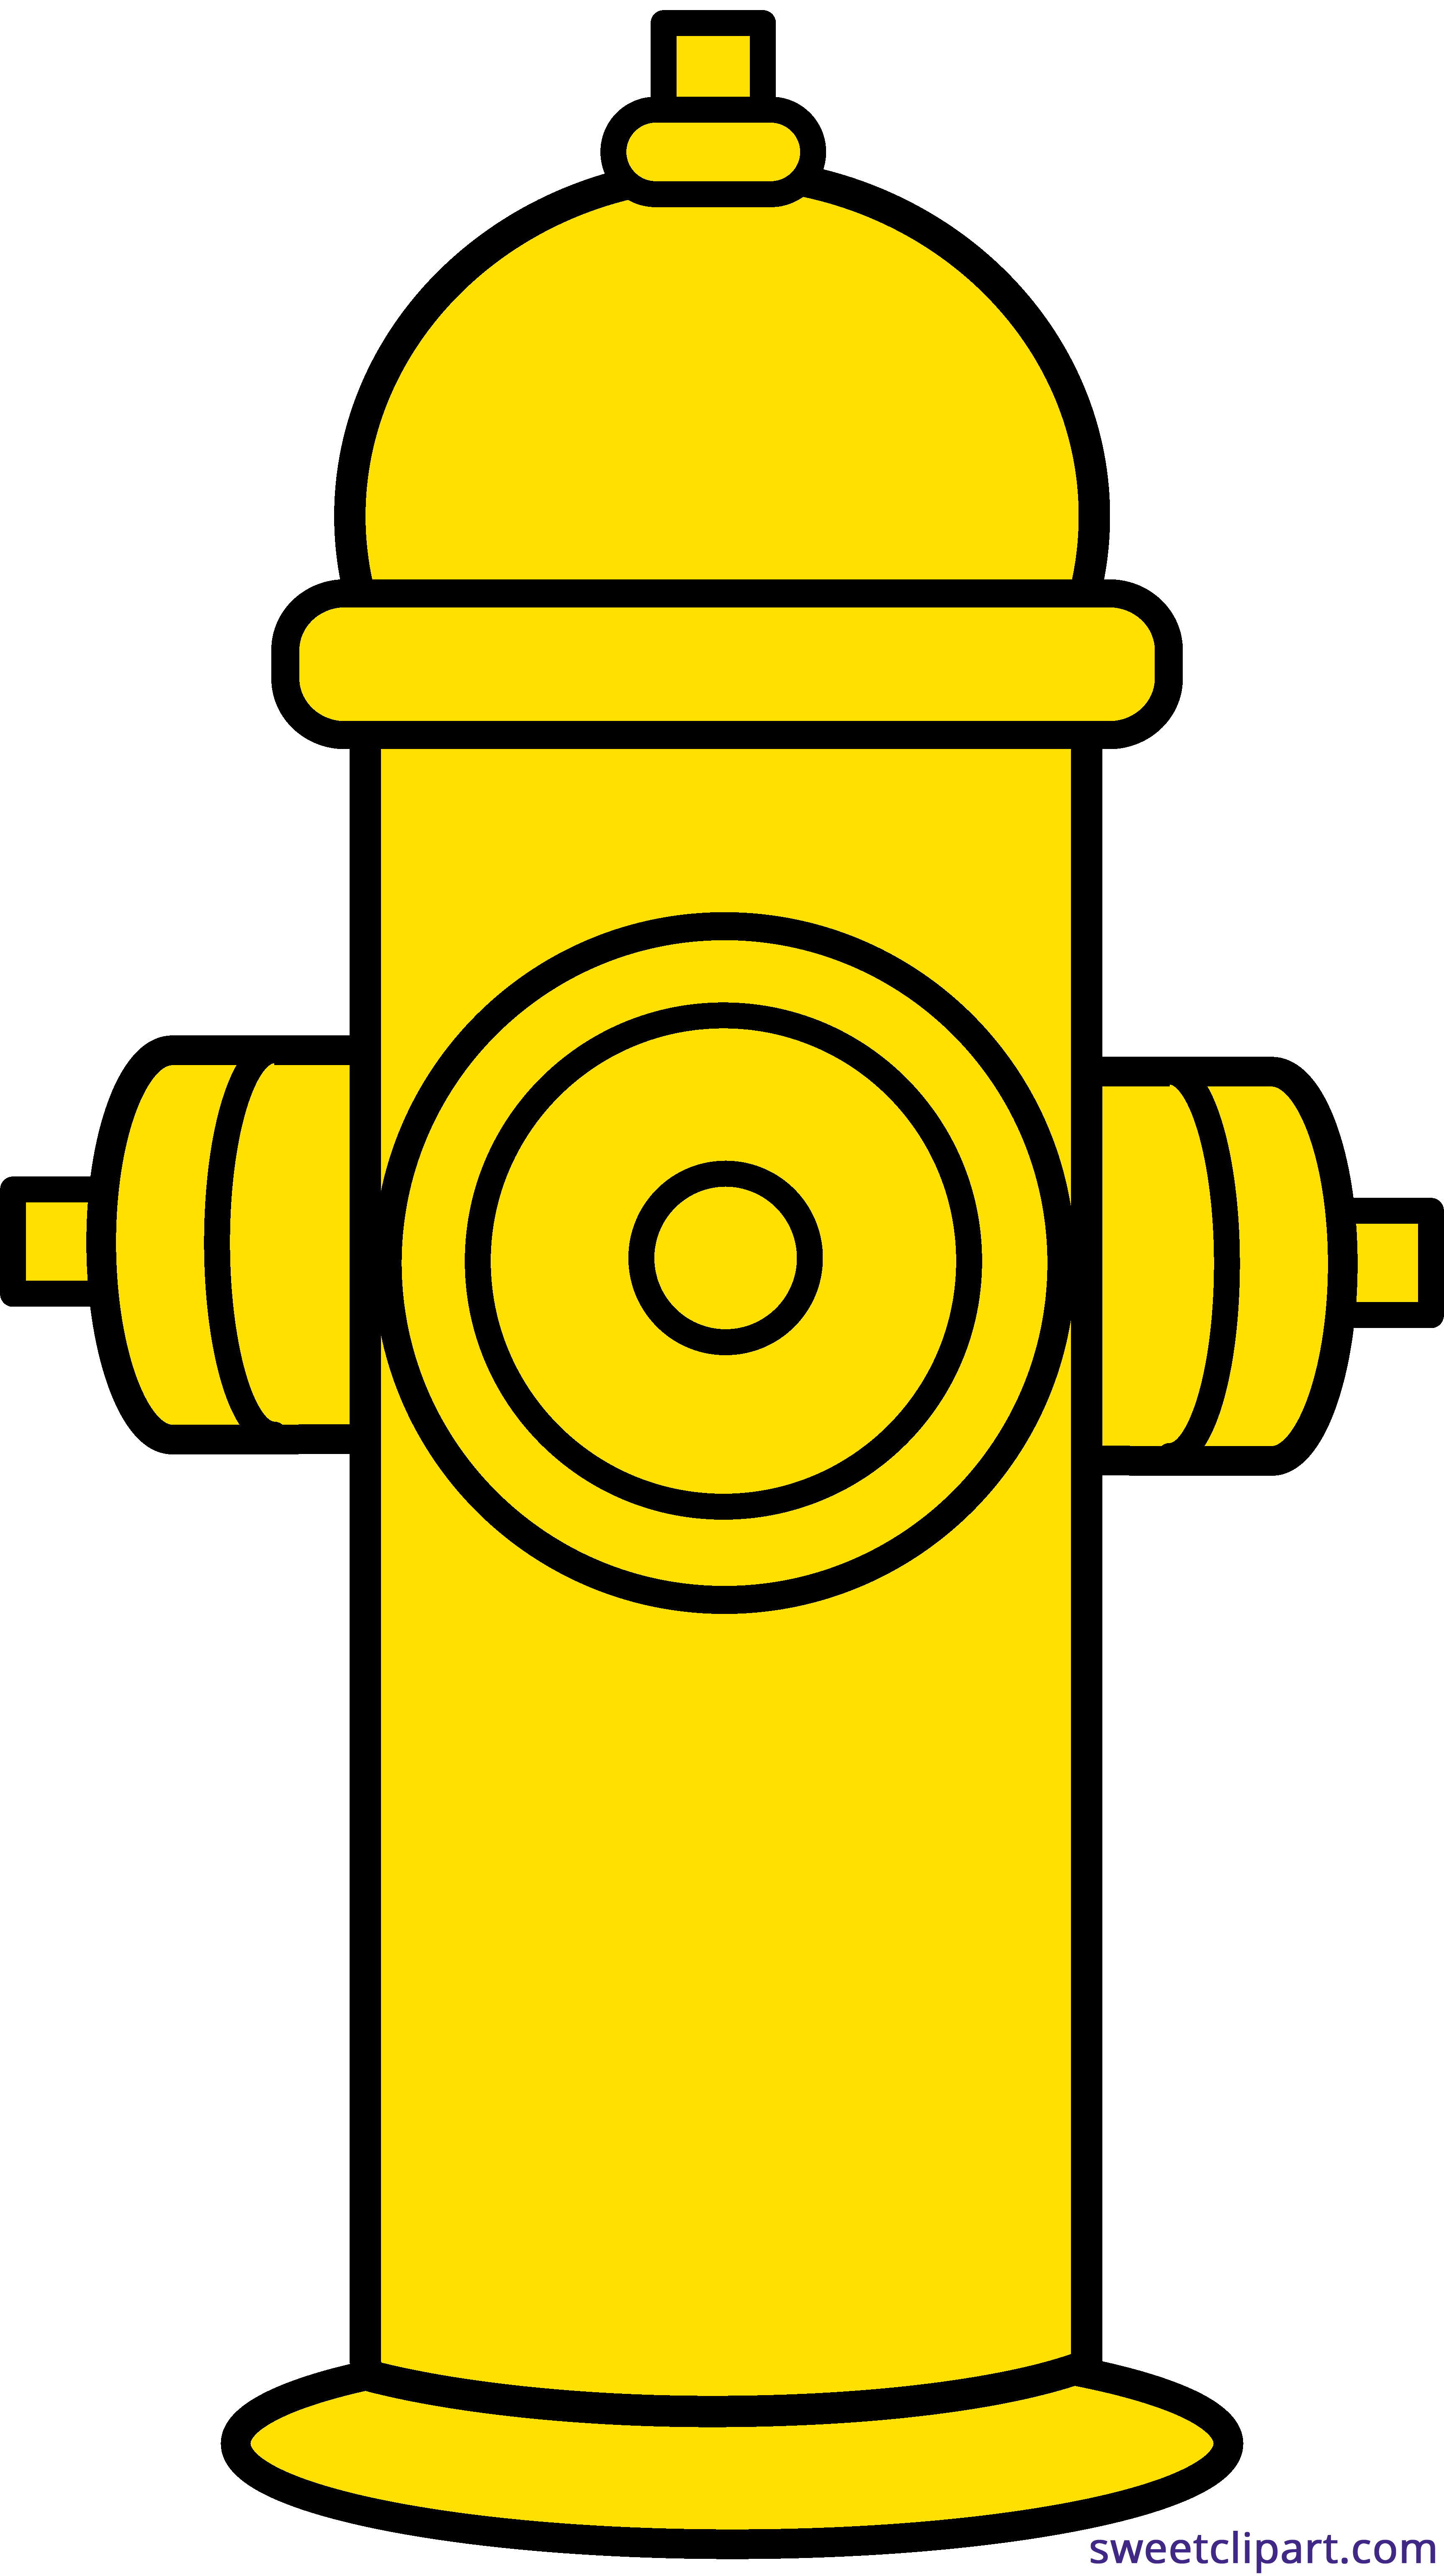 House clipart fire. Hydrant yellow sweet clip